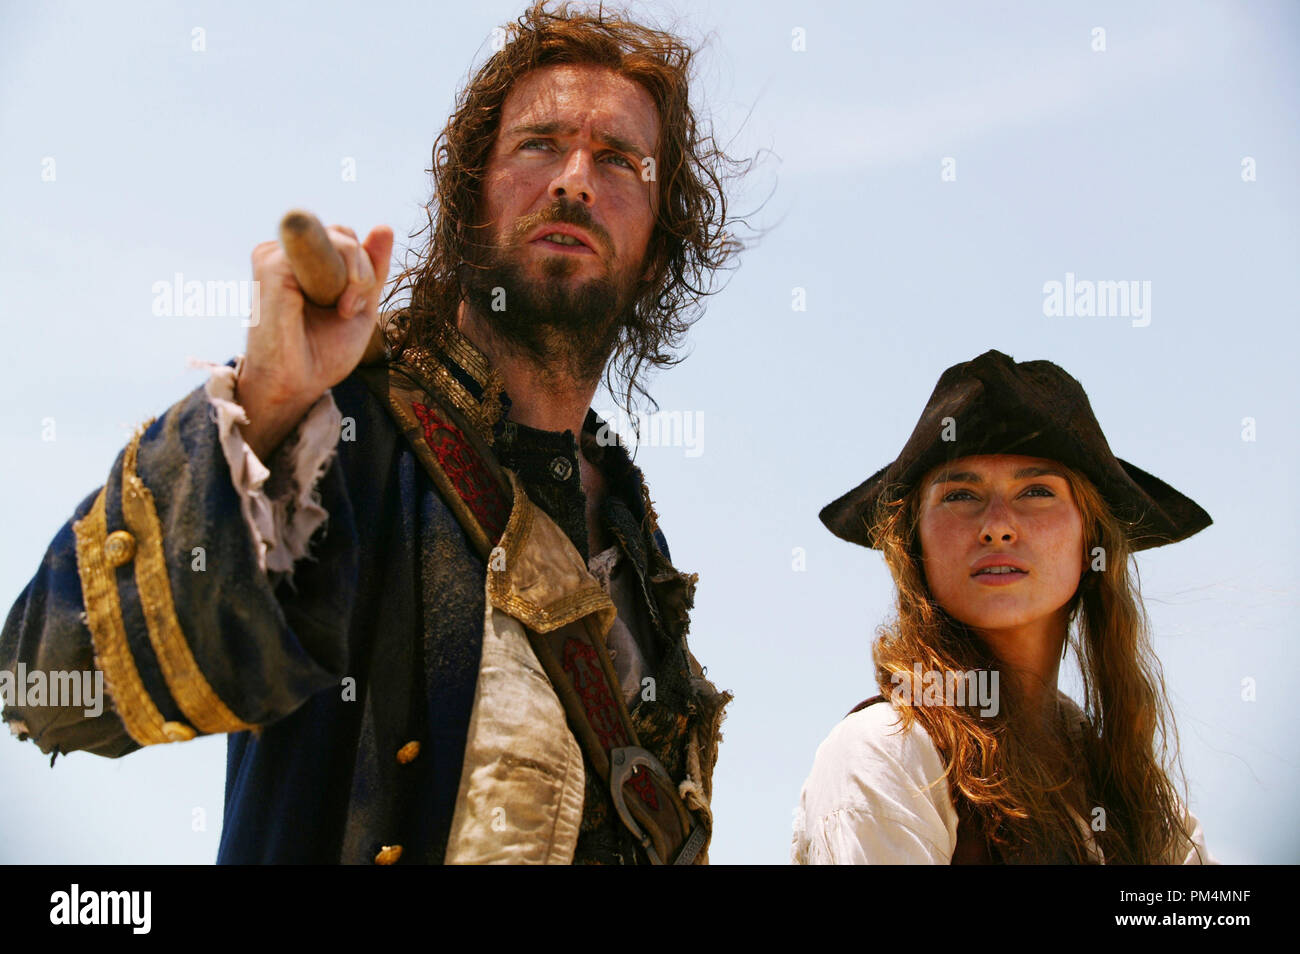 Walt Disney Pictures Presents 'Pirates of the Caribbean: Dead Man's Chest'  Jack Davenport, Keira Knightley - Stock Image